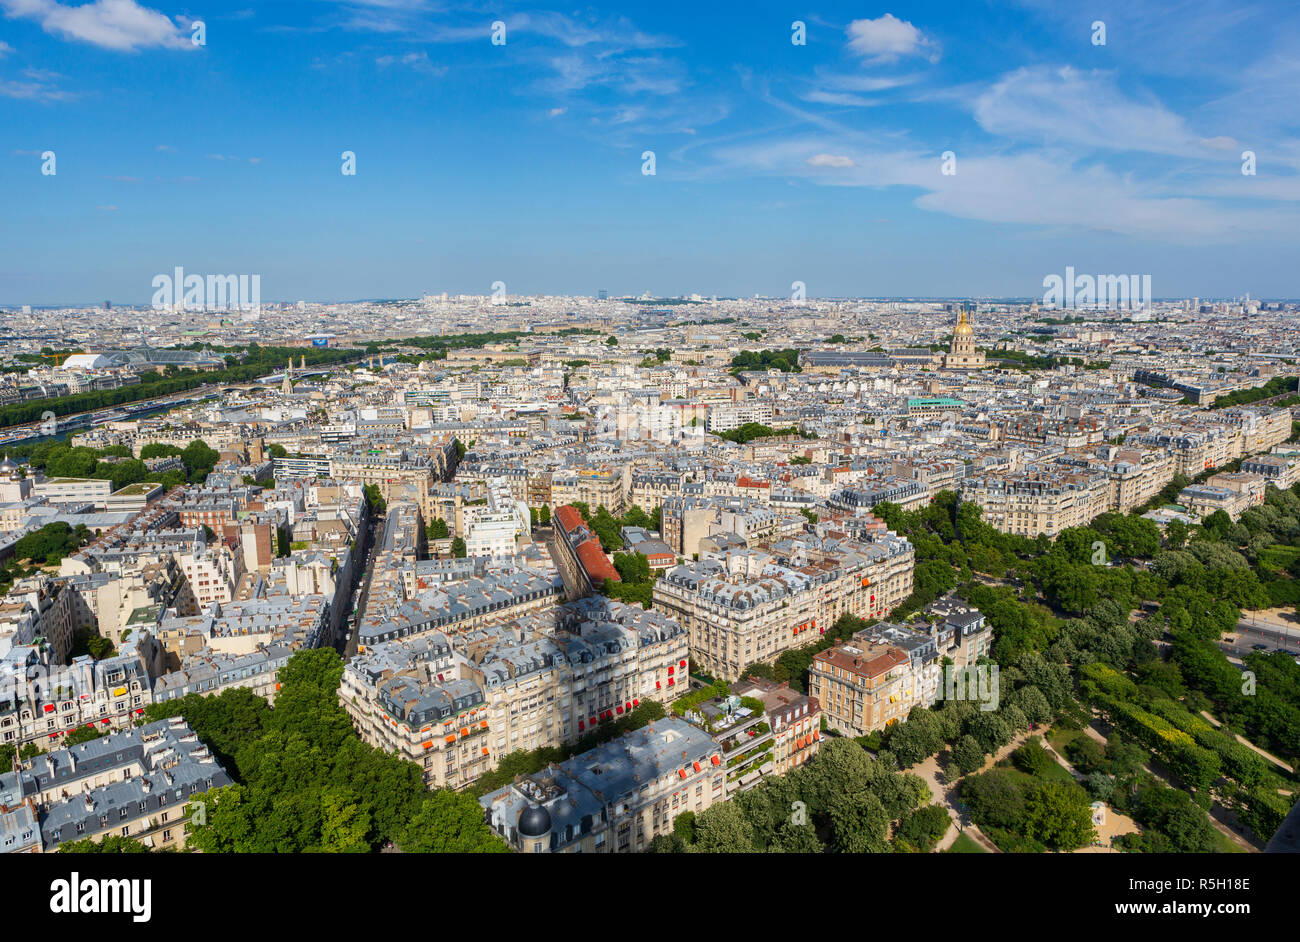 The city of Paris, France, seen from Eiffel Tower. Stock Photo